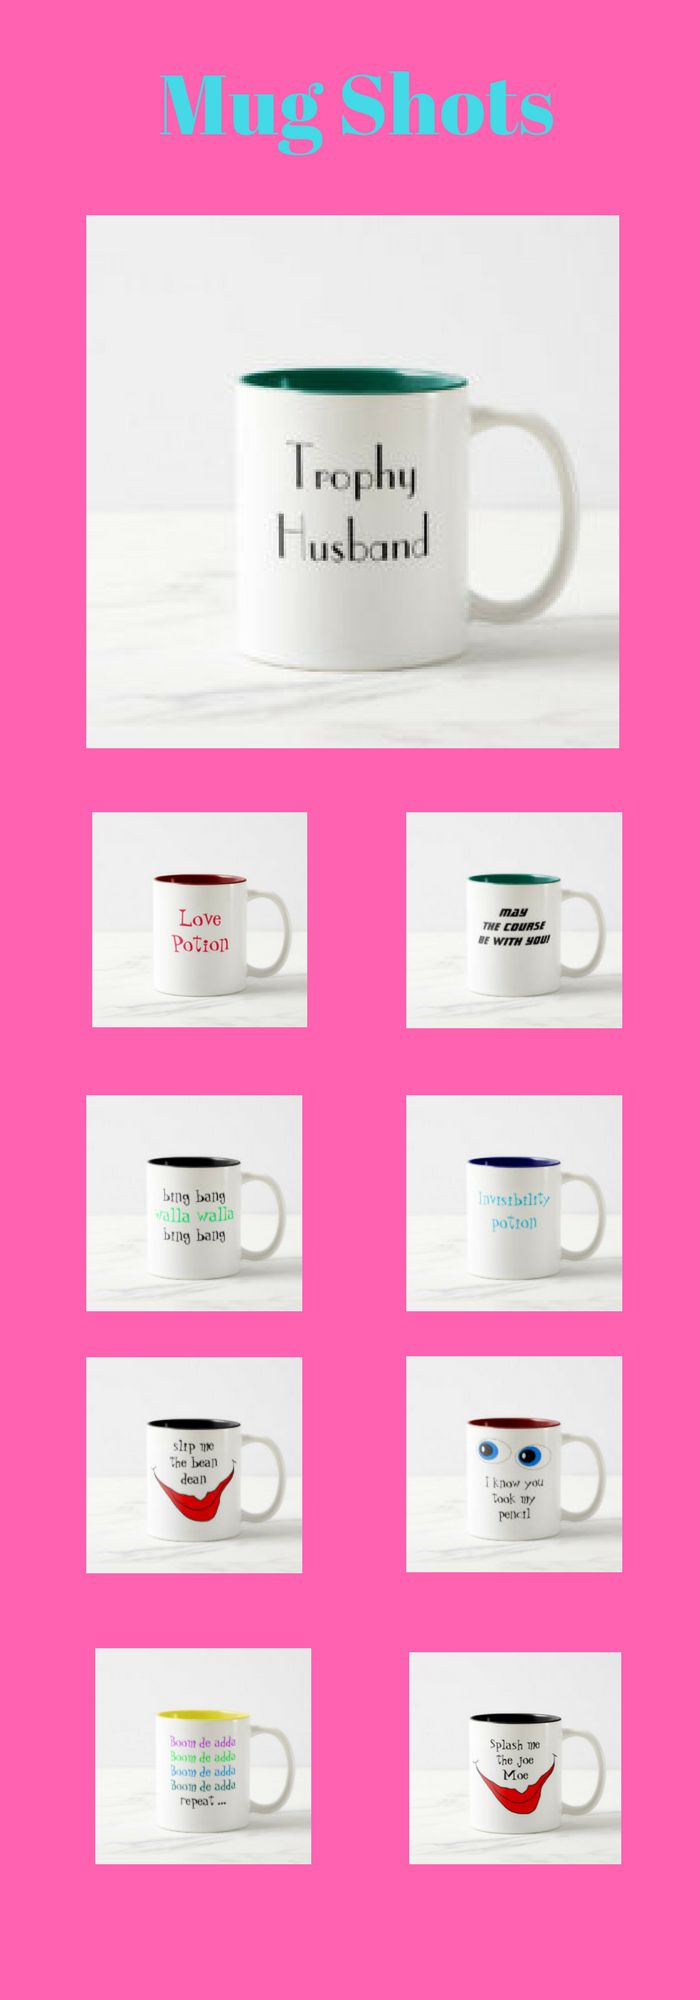 cheap funny coffee mugs, funny sayings coffee mugs, funny coffee mugs amazon, funny coffee travel mugs, funny coffee mugs for guys, funny coffee mugs for work, inappropriate coffee mugs, offensive coffee mugs, unique coffee mugs online, unique travel coffee mugs, half a cup novelty mug, half coffee mug, novelty travel coffee mugs, novelty coffee mugs near me, novelty coffee mugs wholesale, you asked for half a cup of coffee mug, Trophy Husband, Trophy wife